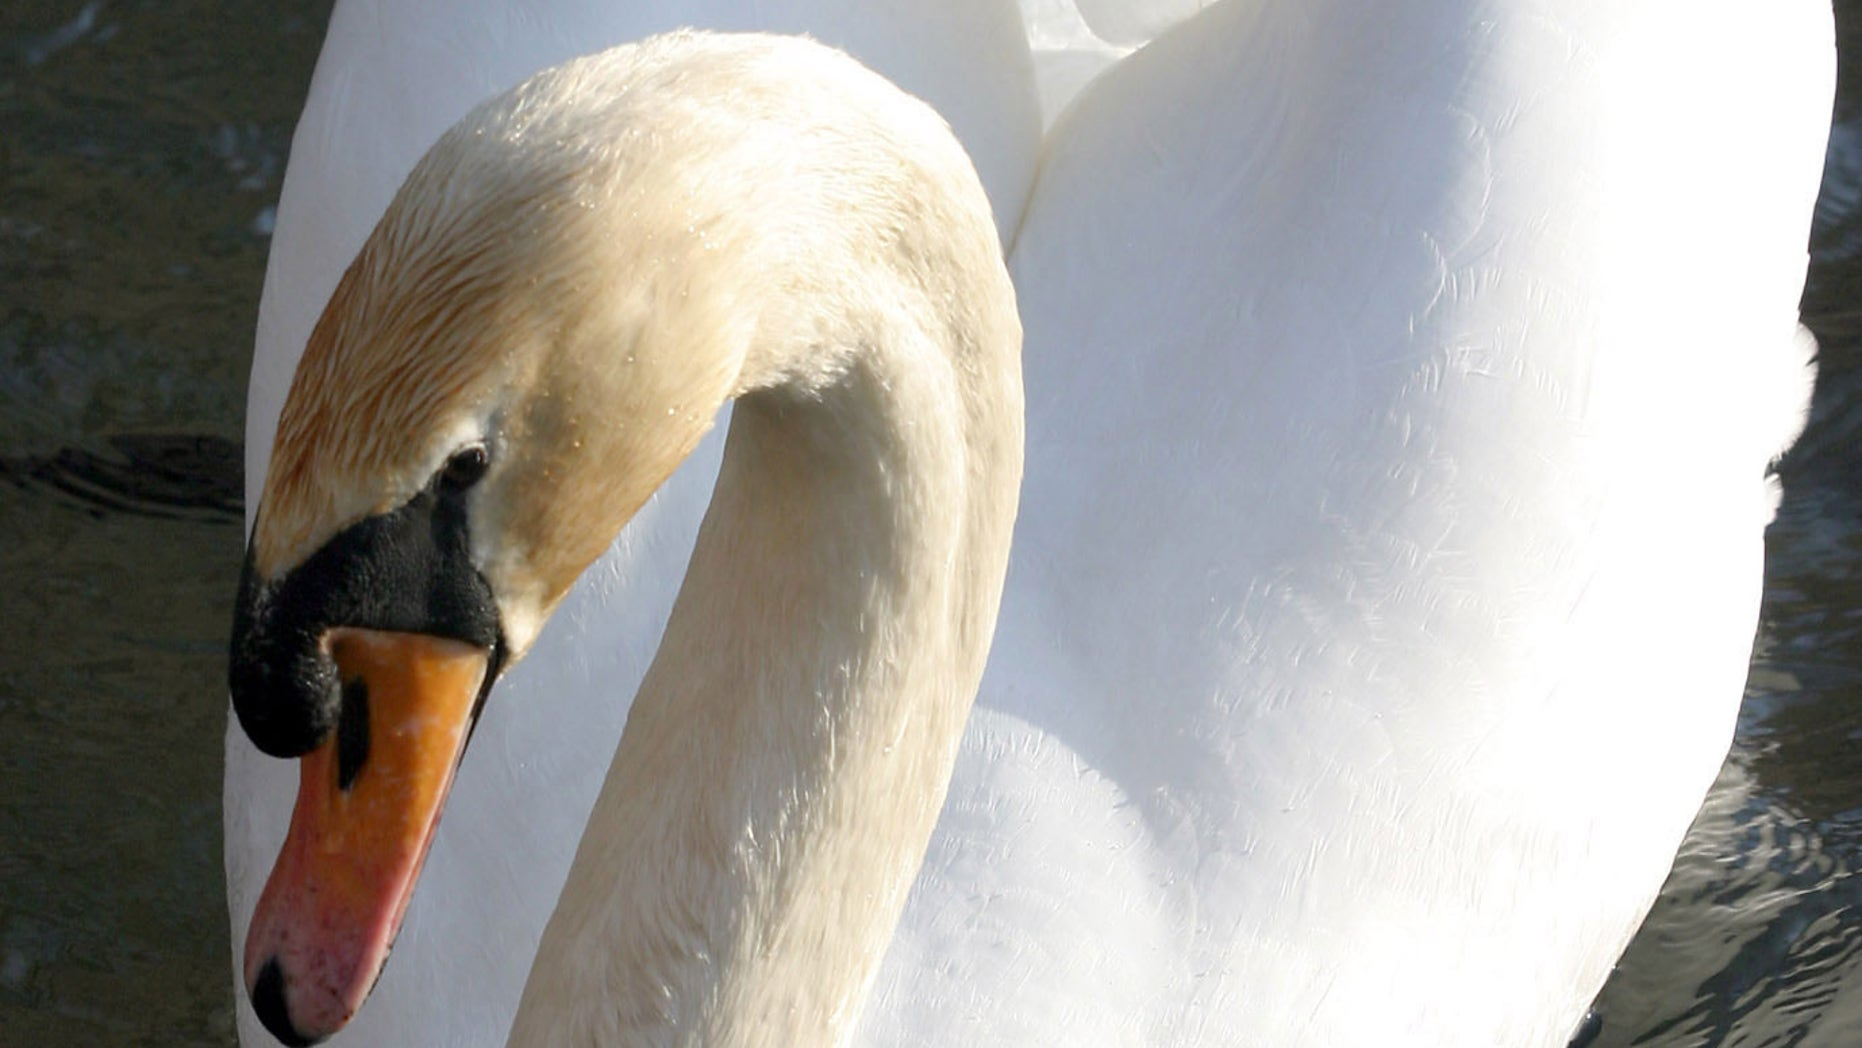 A mute swan swims on the Ohrid lake near the border with Macedonia in the city of Pogradec, about 160 km (100 miles) from capital Tirana, Albania, March 5, 2006. Albania on Wednesday, March 8, 2006, confirmed its first case of the deadly H5N1 strain of bird flu in a chicken found in the southern Sarande coastal region, near the border with Greece. Picture taken March 5, 2006.   REUTERS/Arben Celi